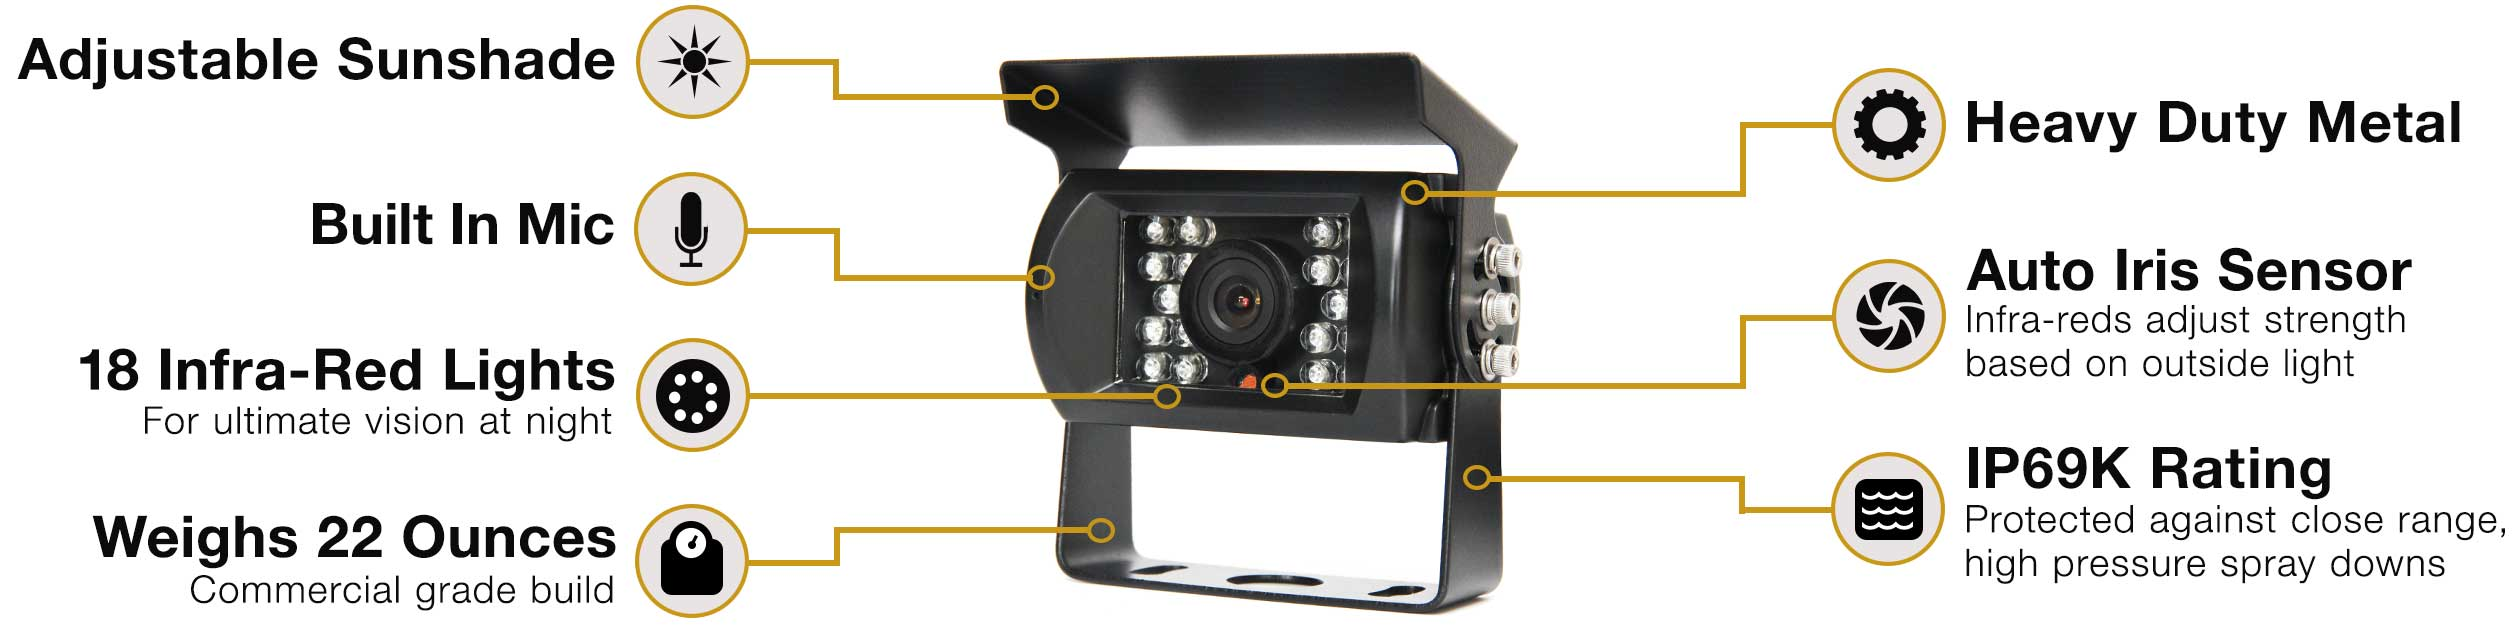 RVS-770 130° Backup Camera with 18 Infra-Red Illuminators